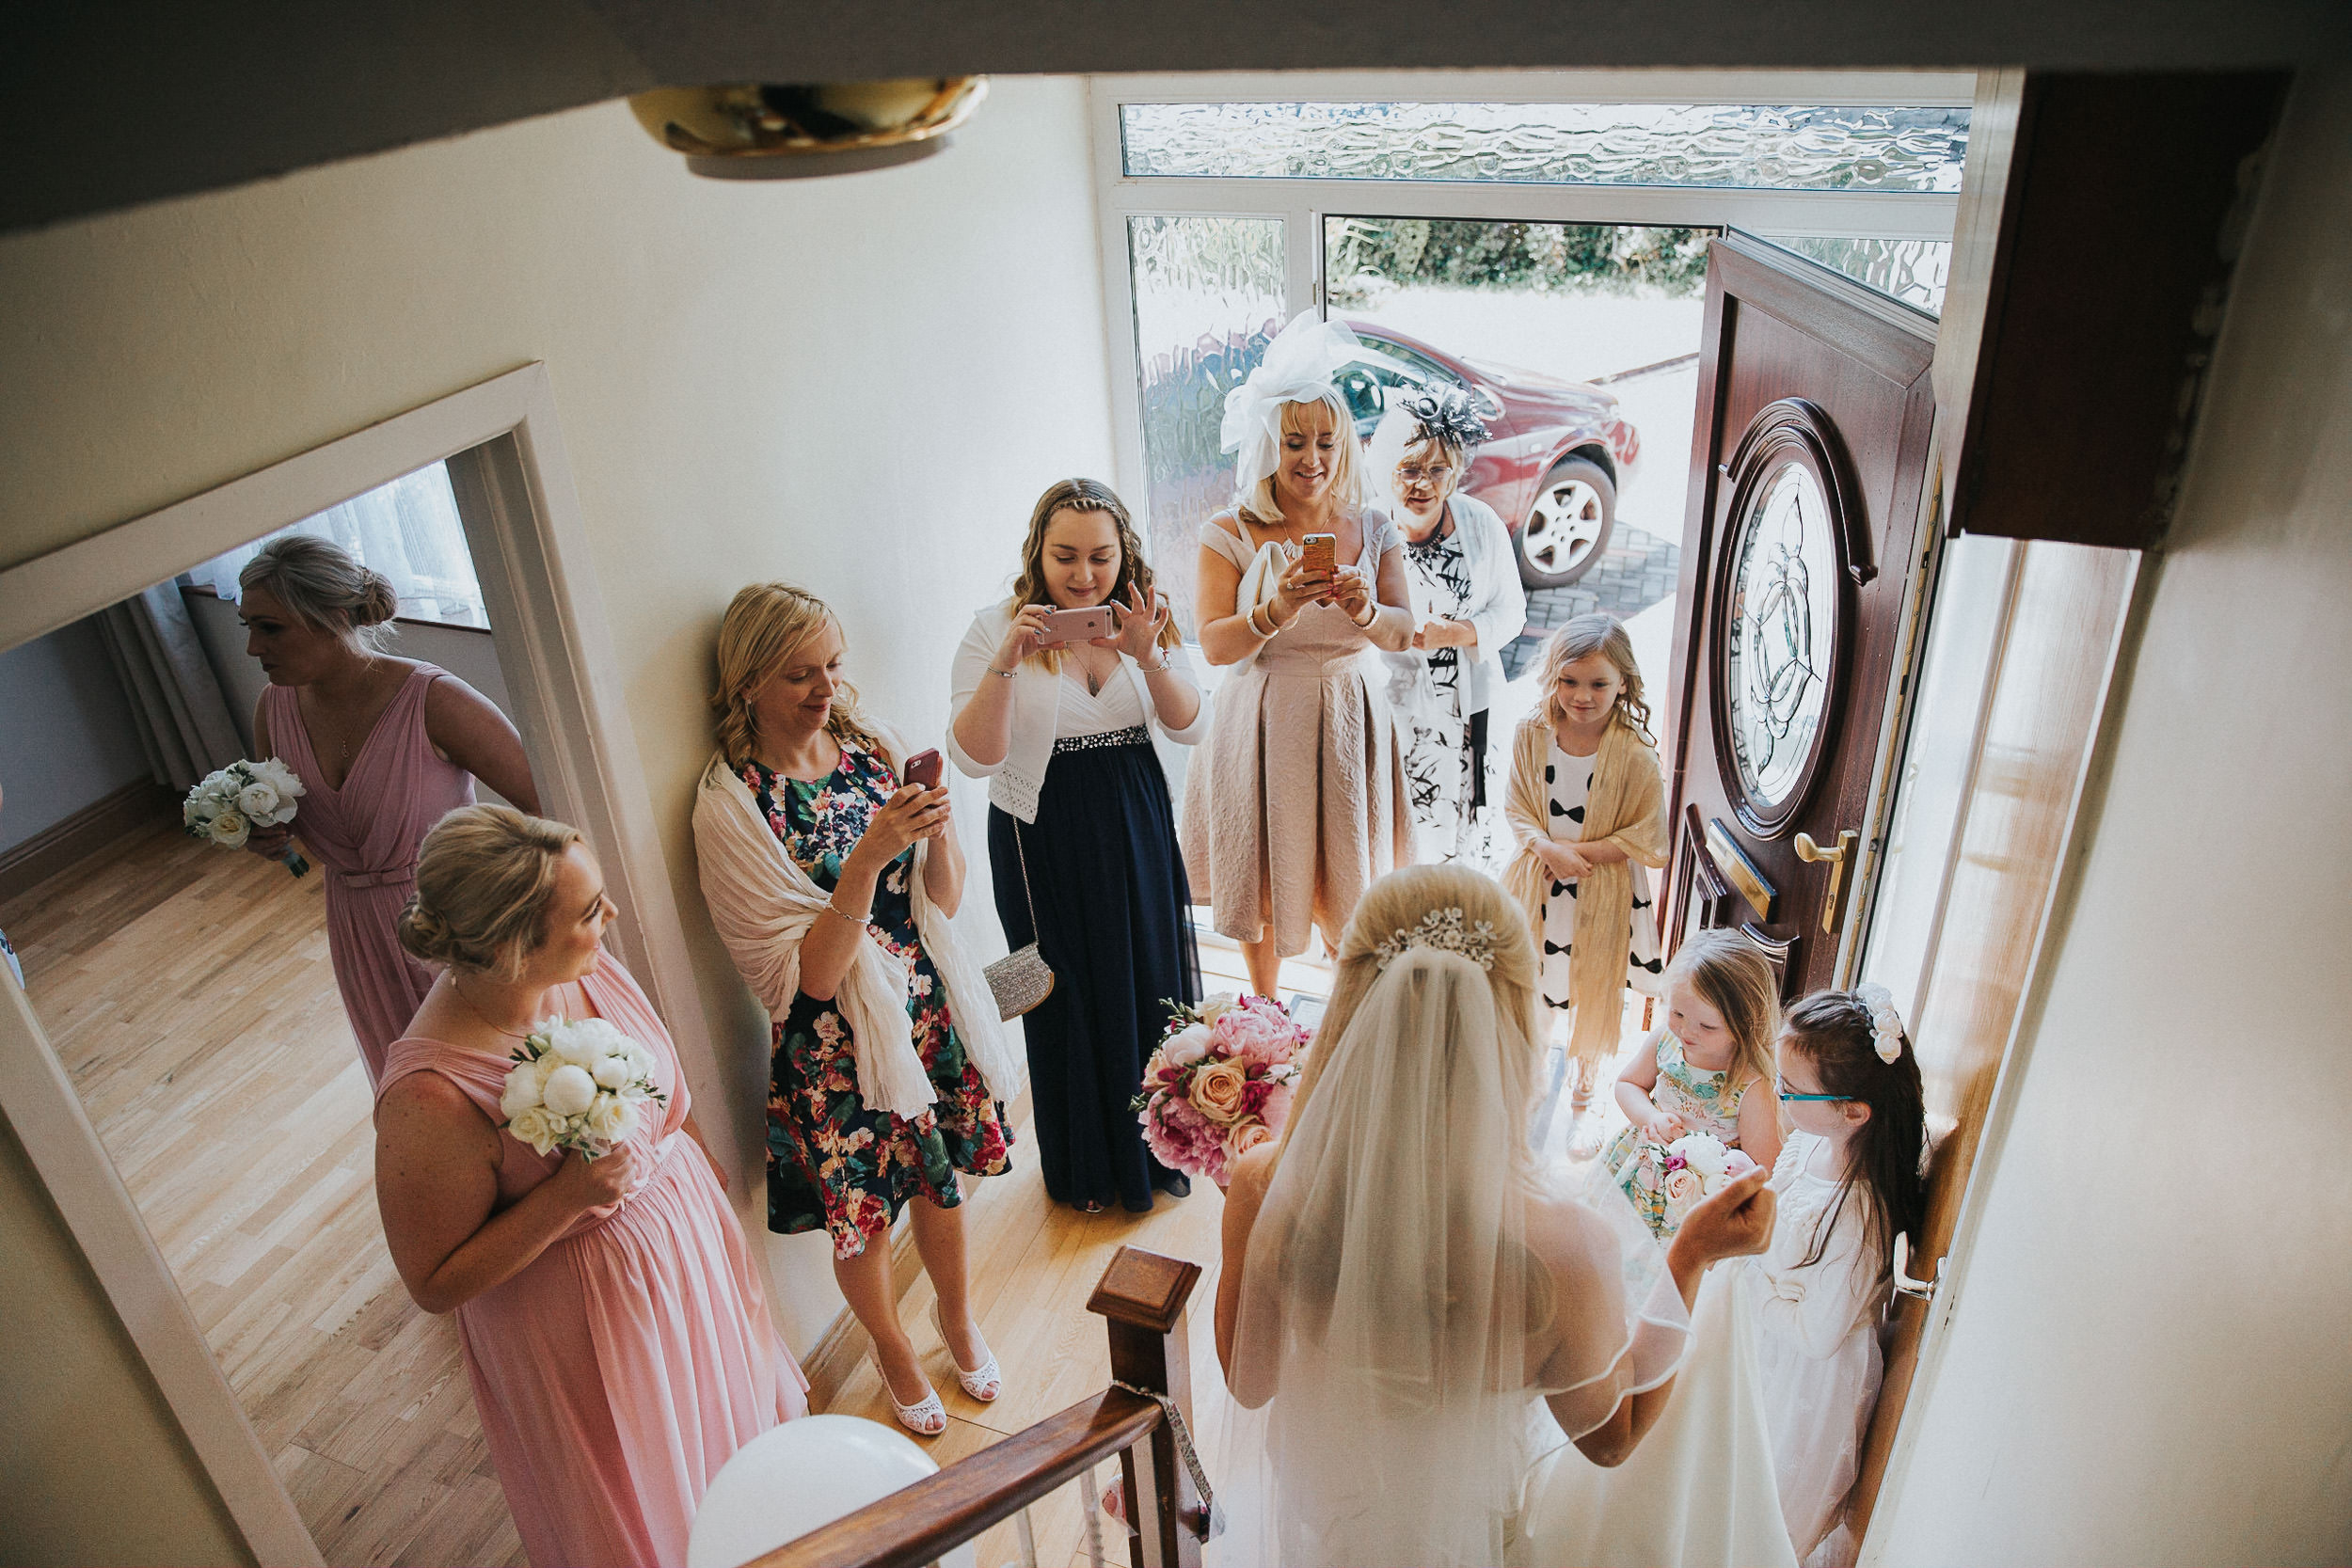 clairebyrnephotography-fun-wedding-photographer-ireland-creative-186.jpg